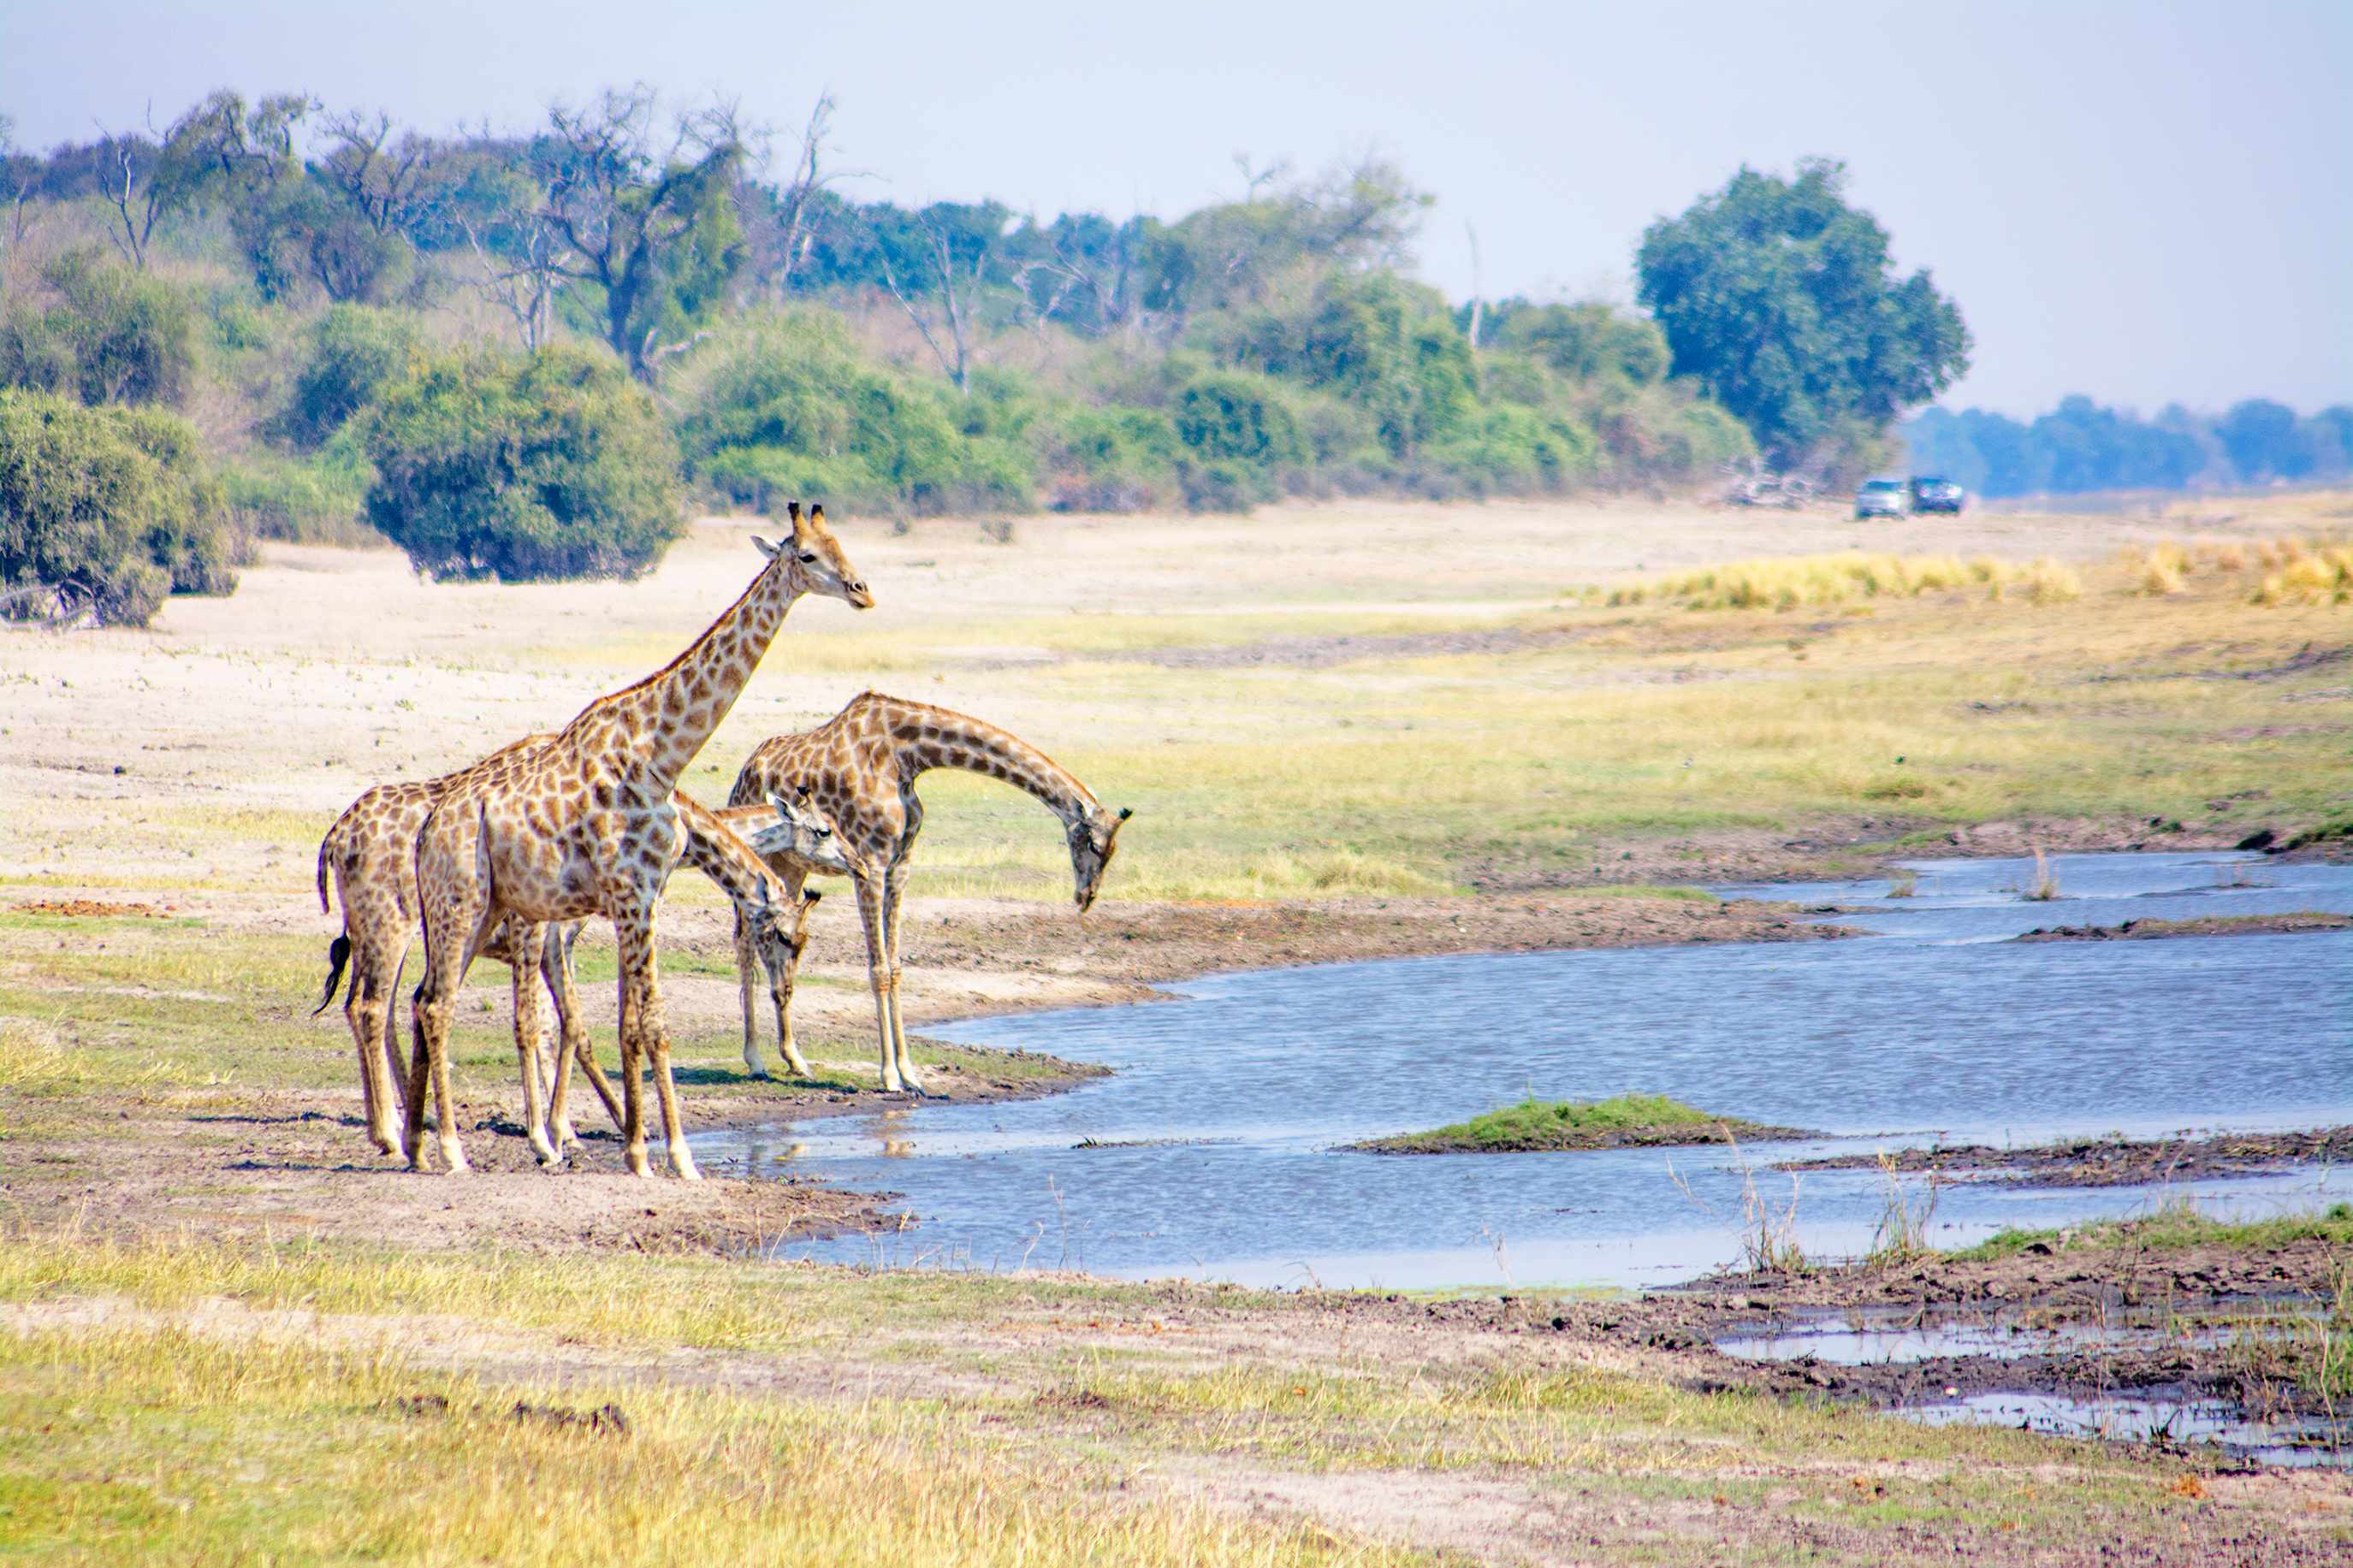 Four giraffes drinking from the Zambezi River © Yolanda Van Niekirk